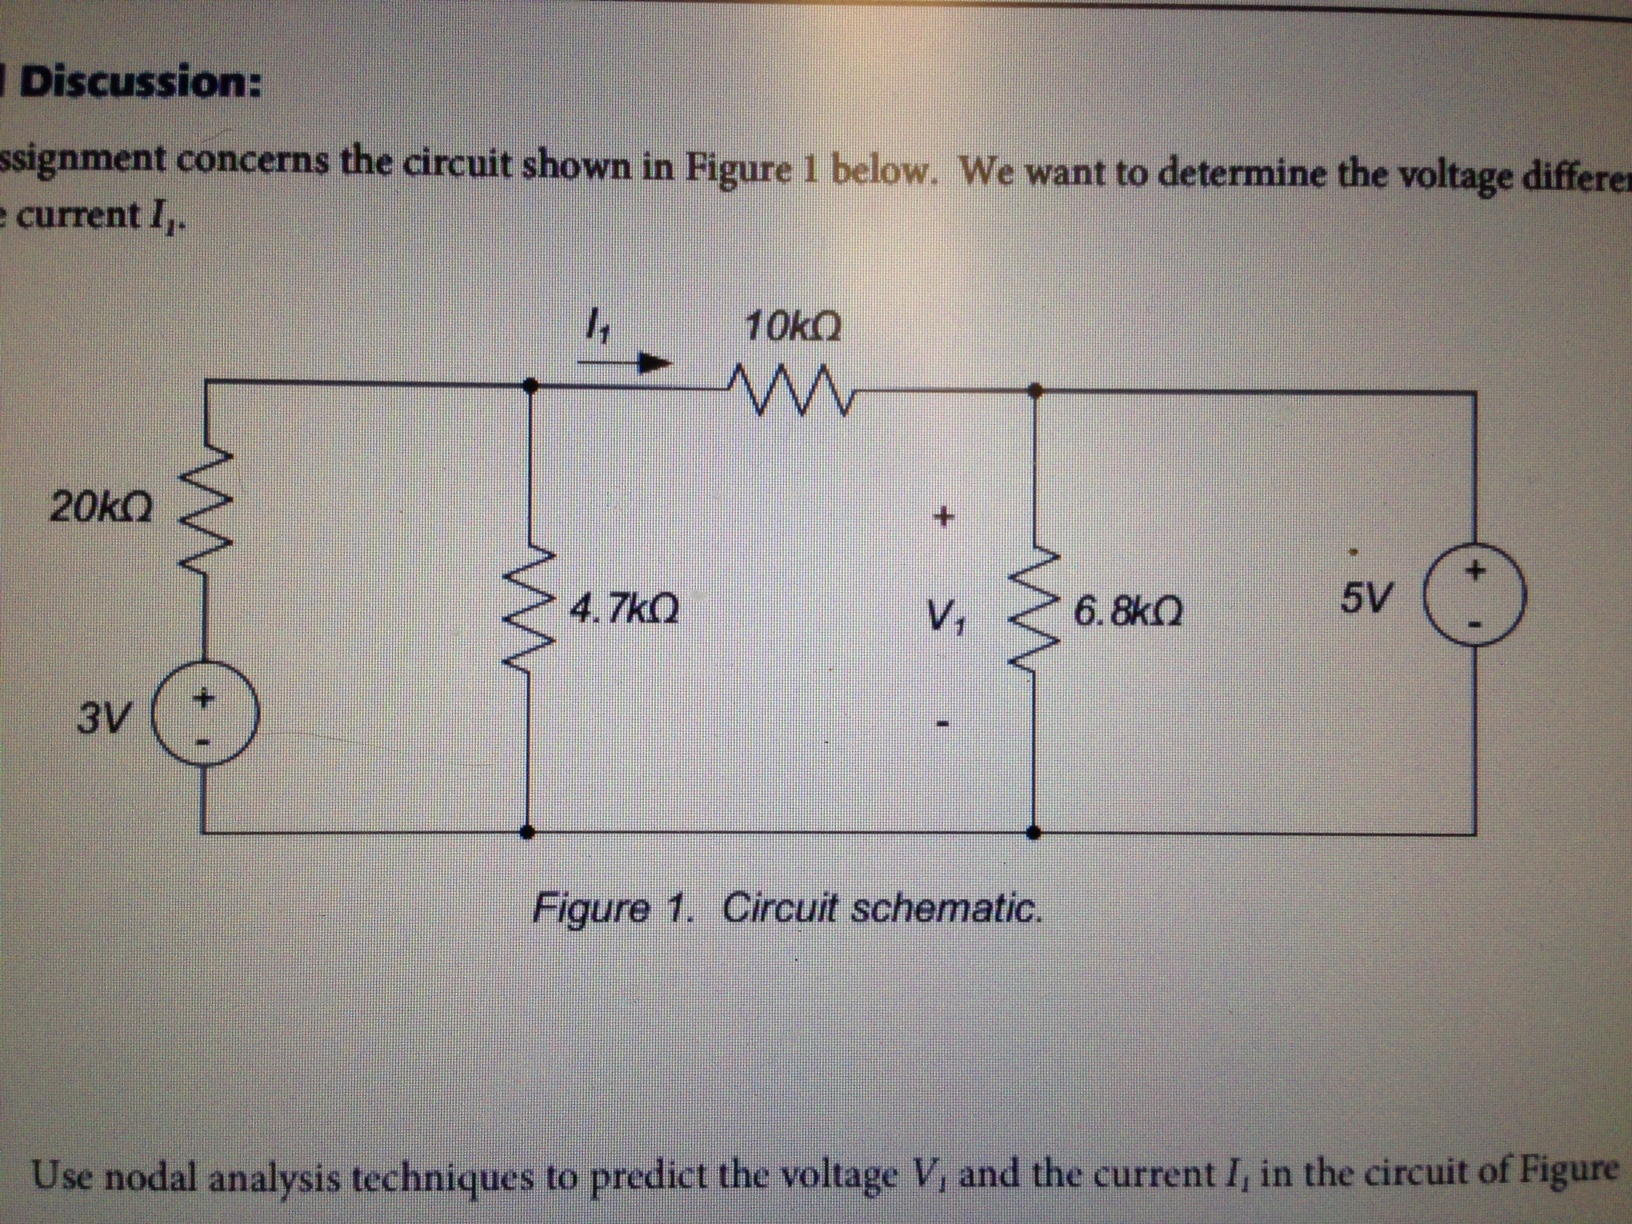 ssignment concerns the circuit shown in figure 1 b